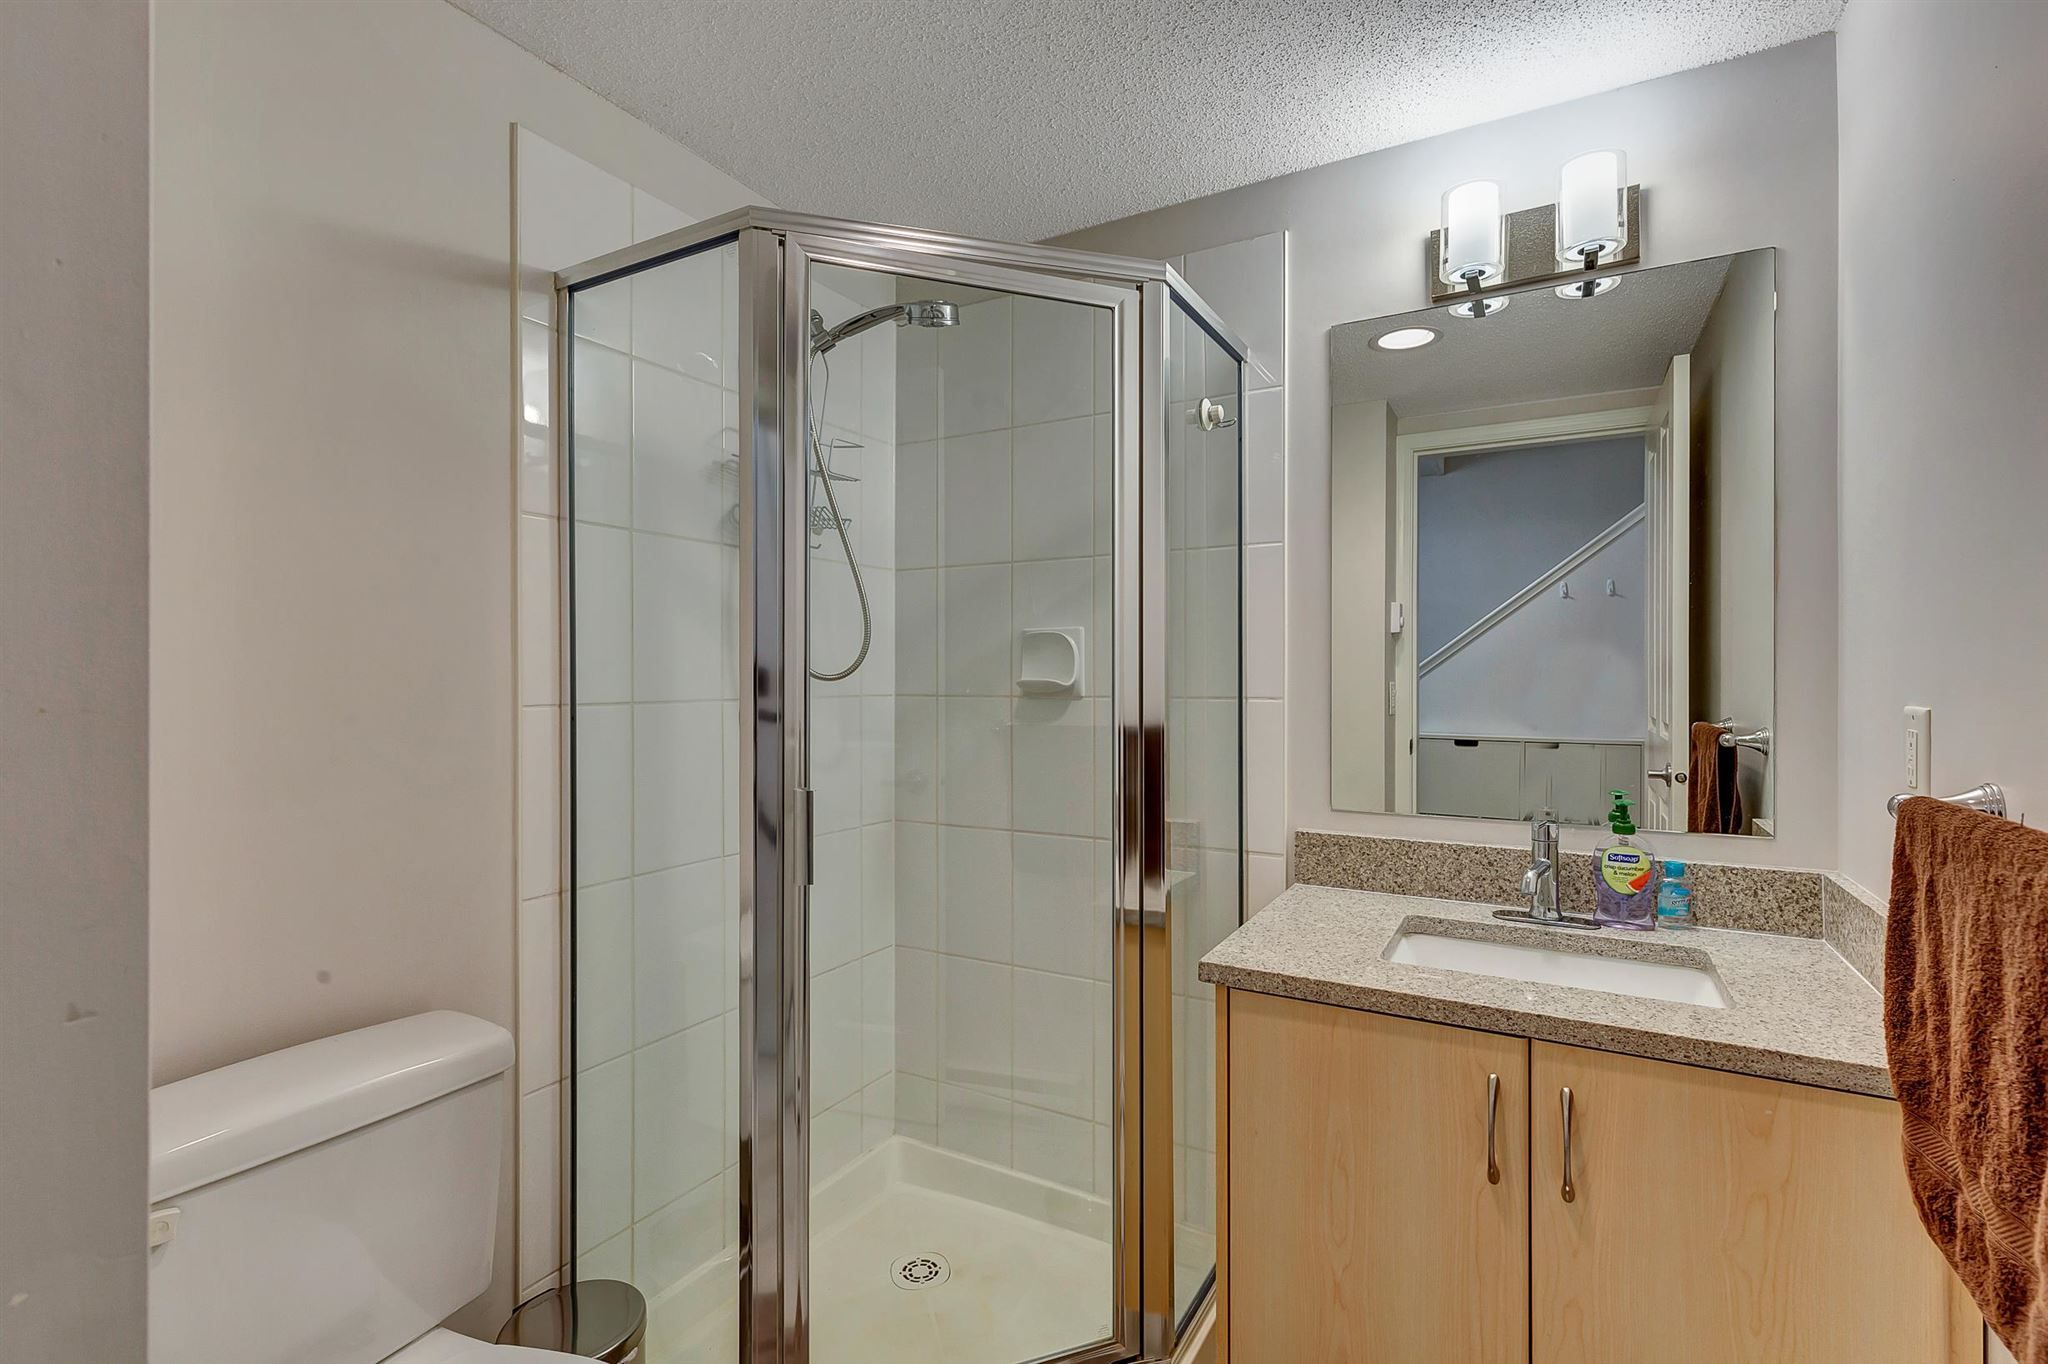 """Photo 25: Photos: 9 15871 85 Avenue in Surrey: Fleetwood Tynehead Townhouse for sale in """"Huckleberry"""" : MLS®# R2606668"""